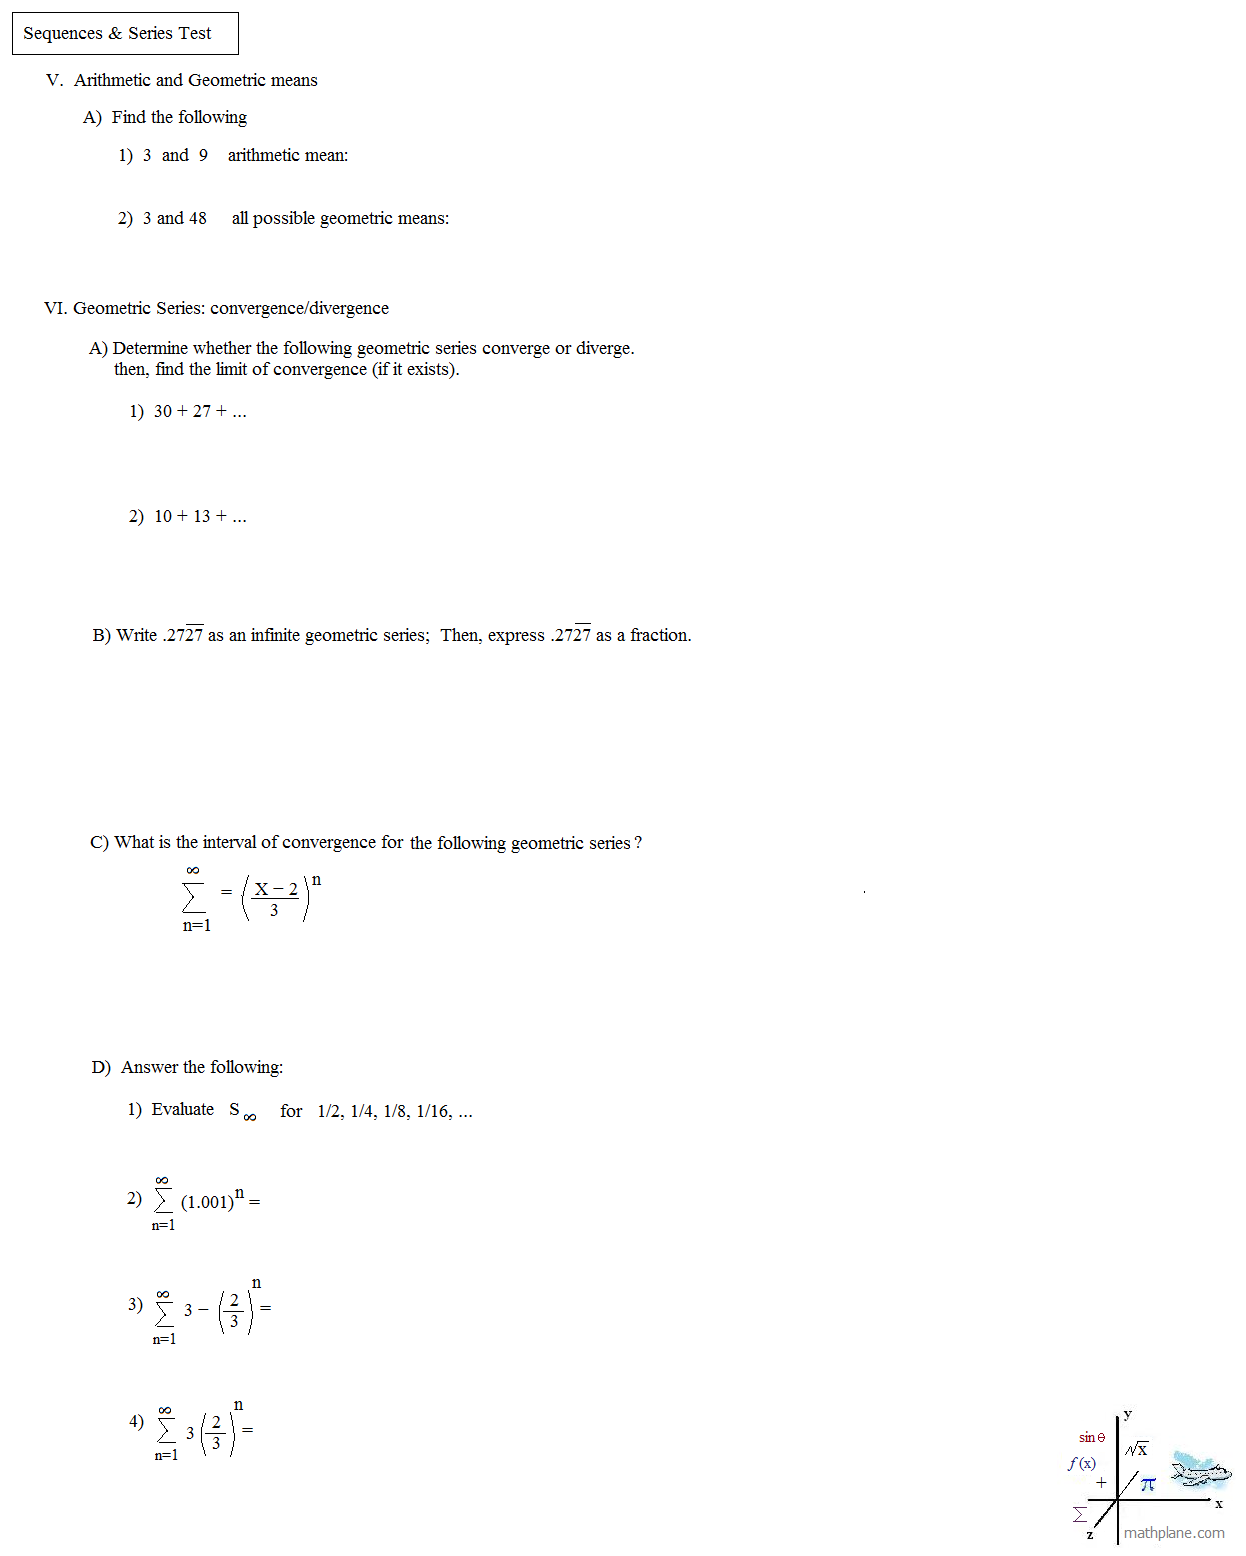 worksheet Arithmetic Series Worksheet arithmetic sequence worksheet for division graphing mathematics 12 advanced crap mathplane sequences and series test page 3 sequence